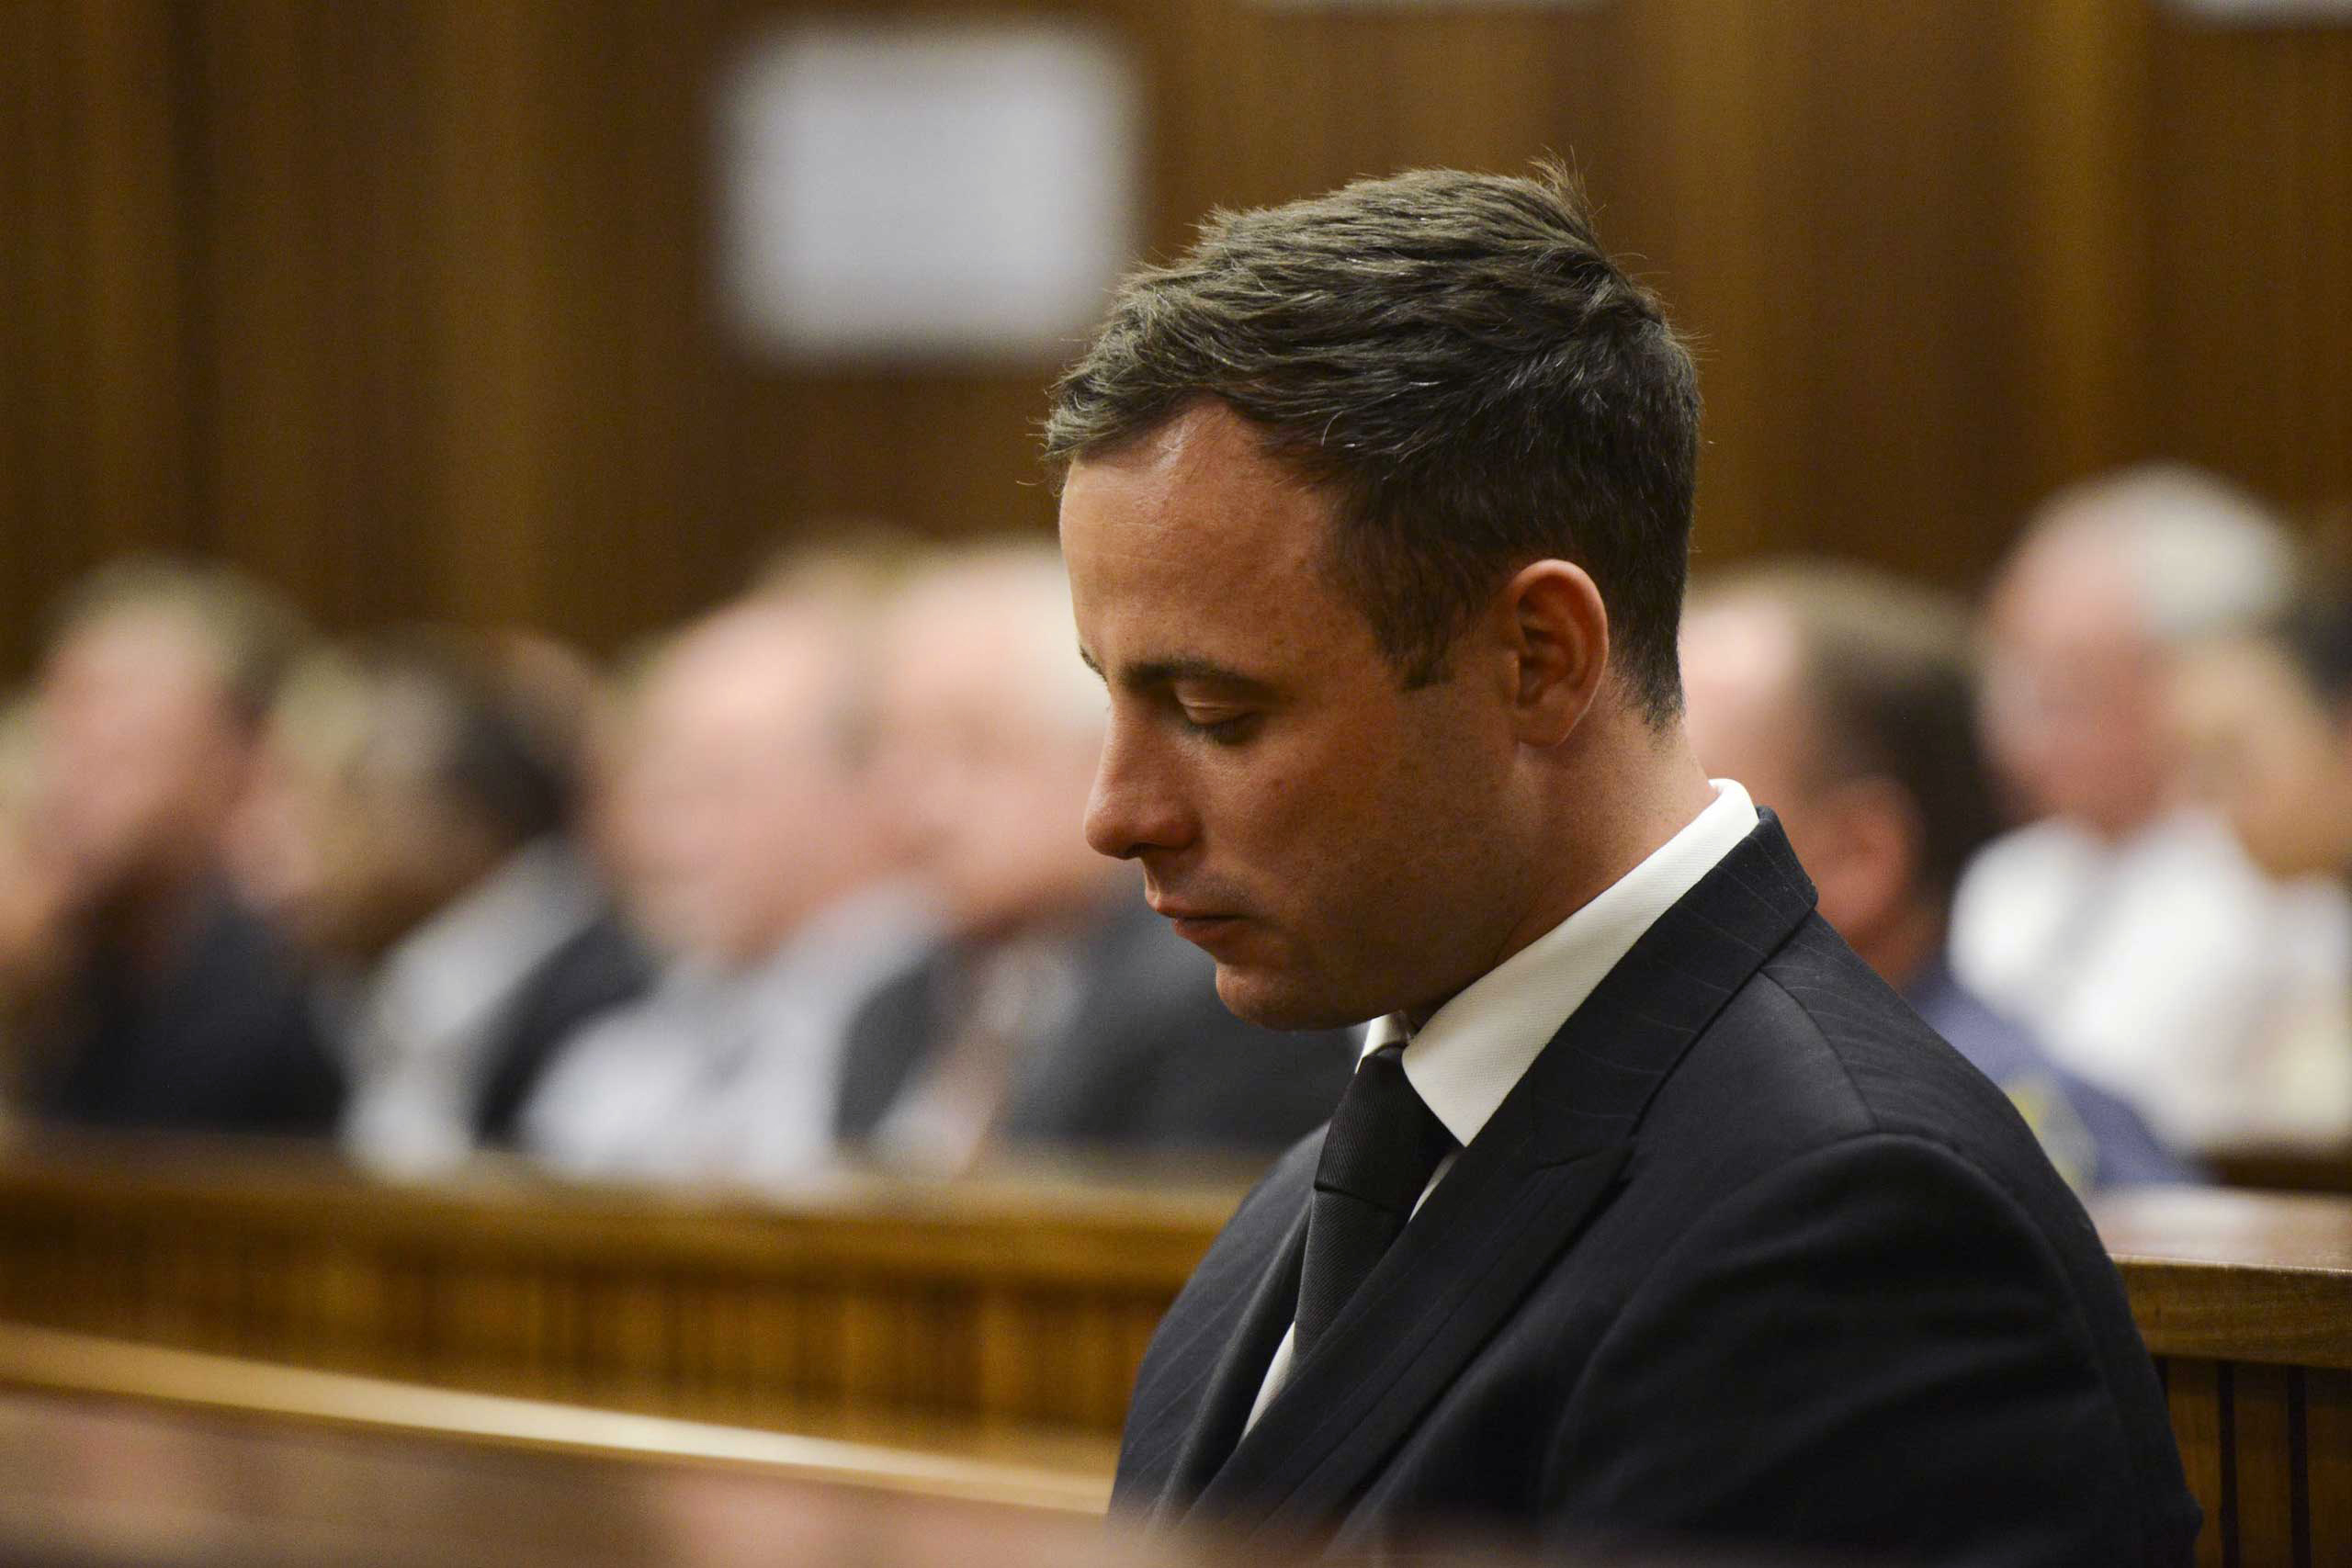 Oscar Pistorius after he is sentenced at the Pretoria High Court on October 21, 2014, in Pretoria, South Africa.